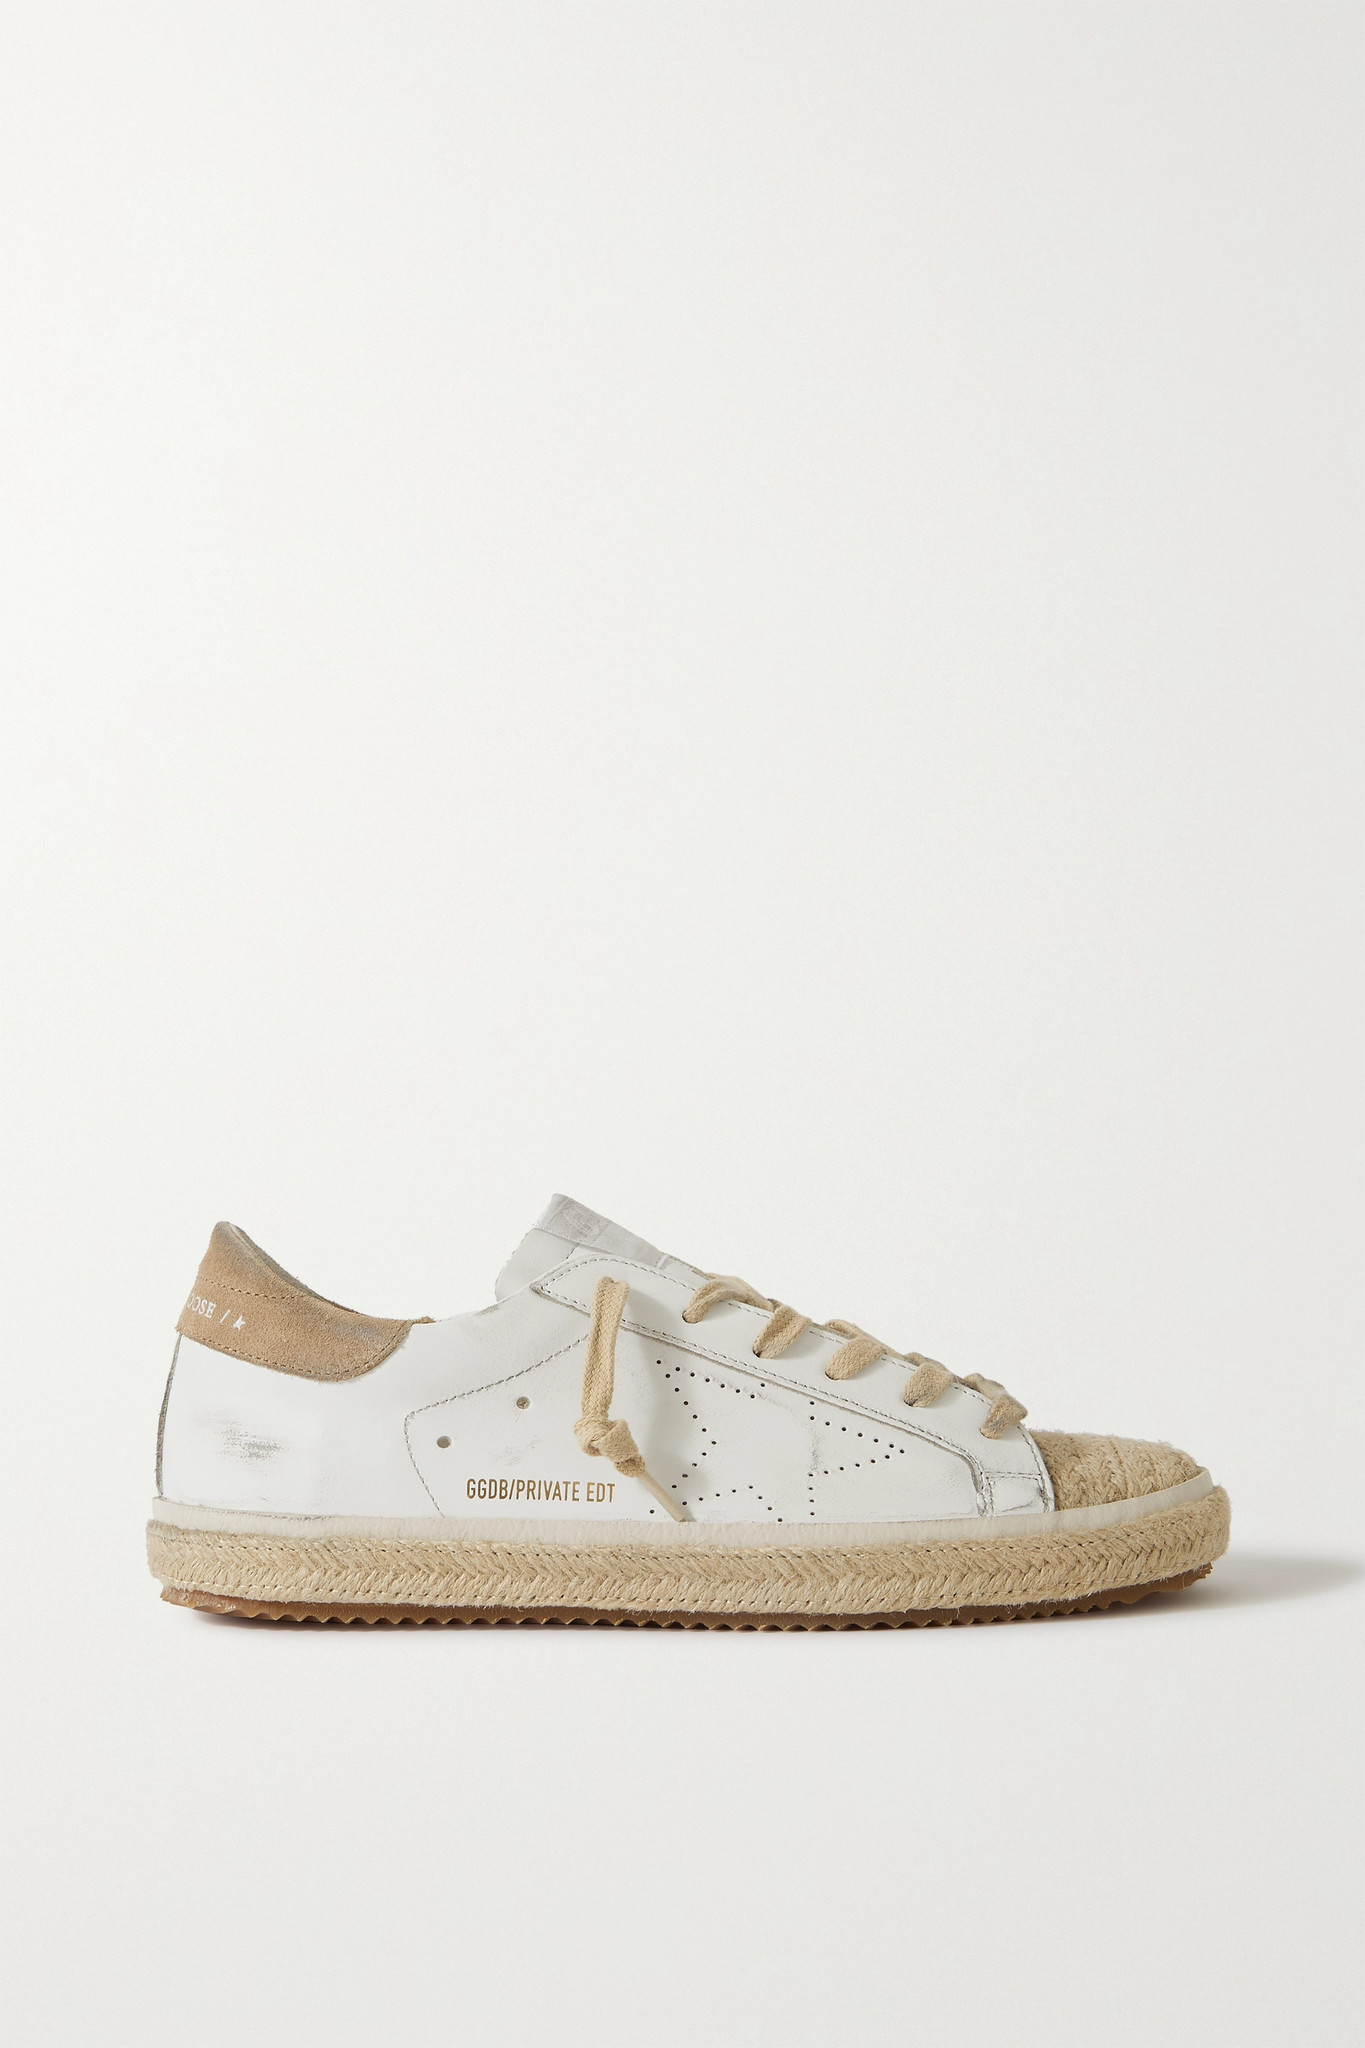 GOLDEN GOOSE - Superstar Distressed Suede-trimmed Leather Espadrille Sneakers - White - IT41